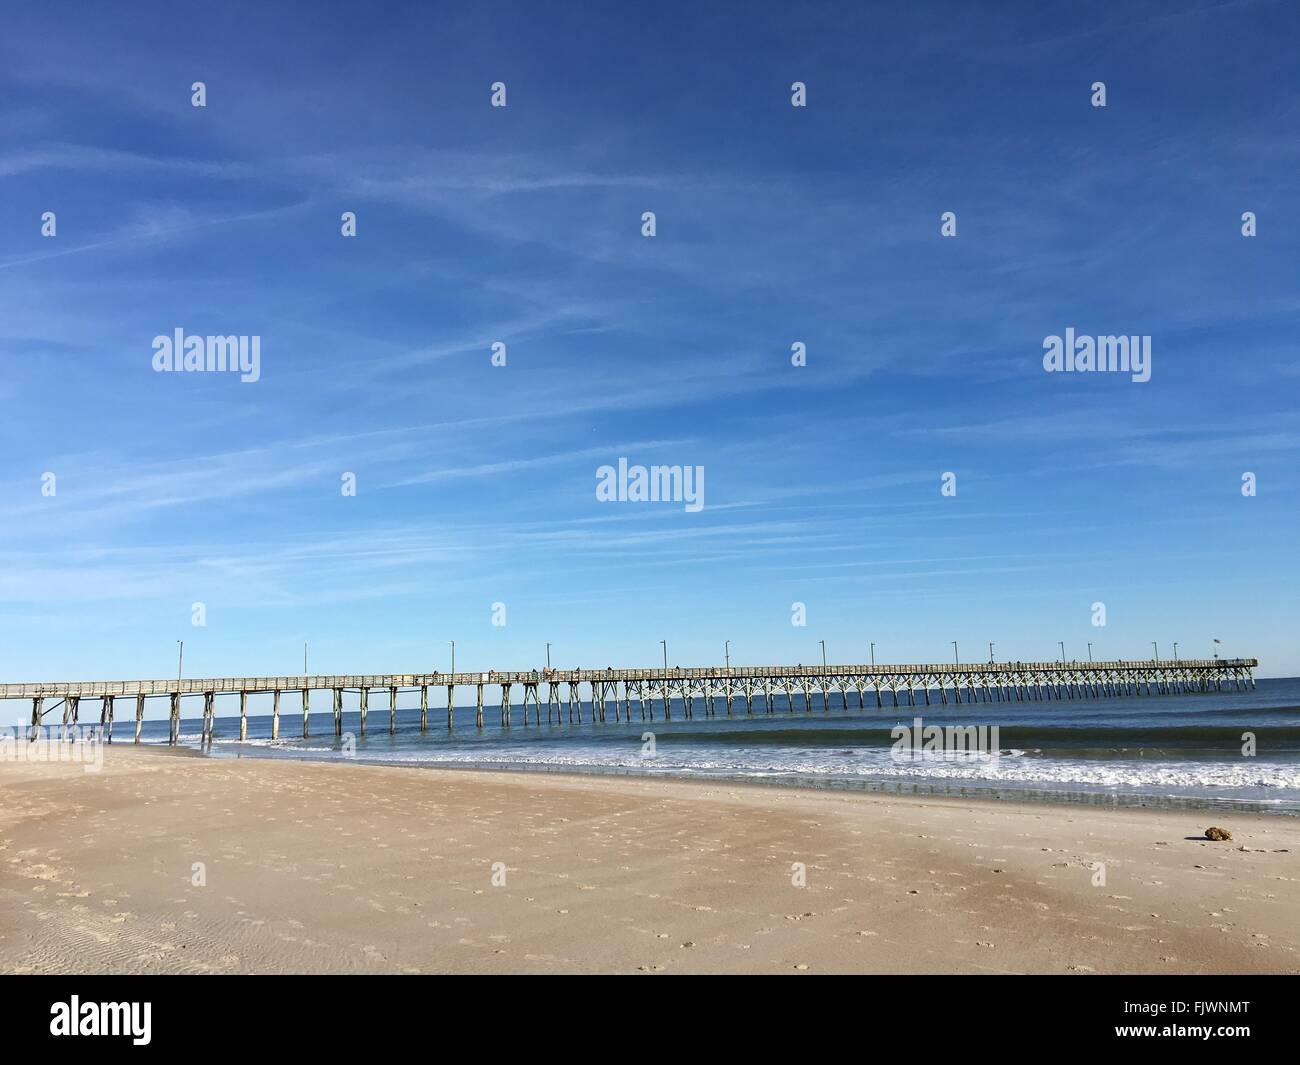 Pier Over Sea Against Sky - Stock Image